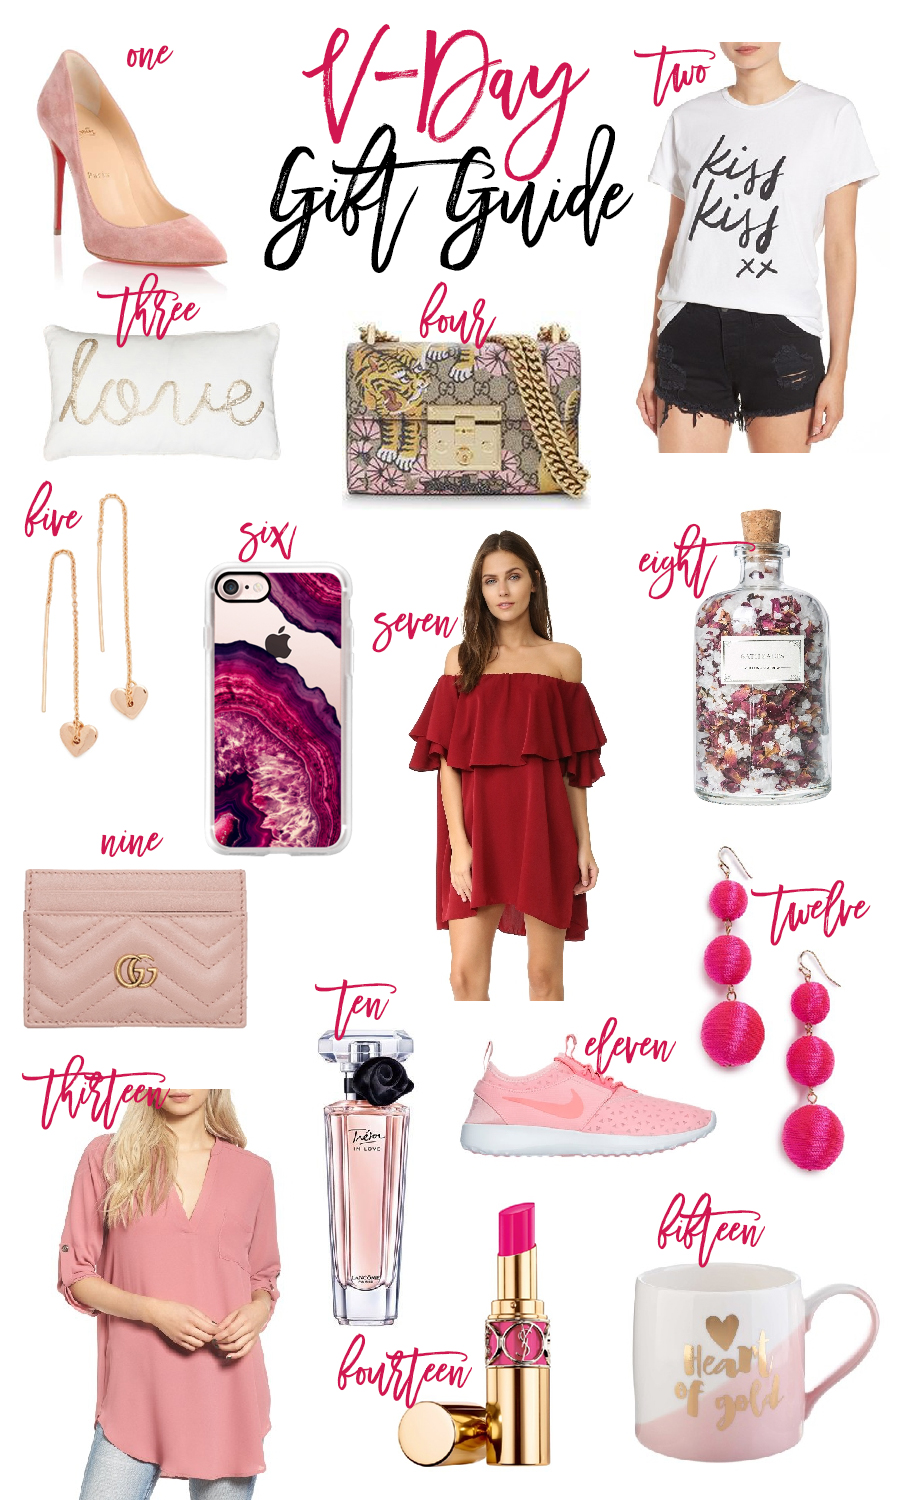 V-Day-Gift-Guide-Valentine's-Day-Gifts-for-Her-V-Day-Gift-Guide-for-Her-Have-Need-Want